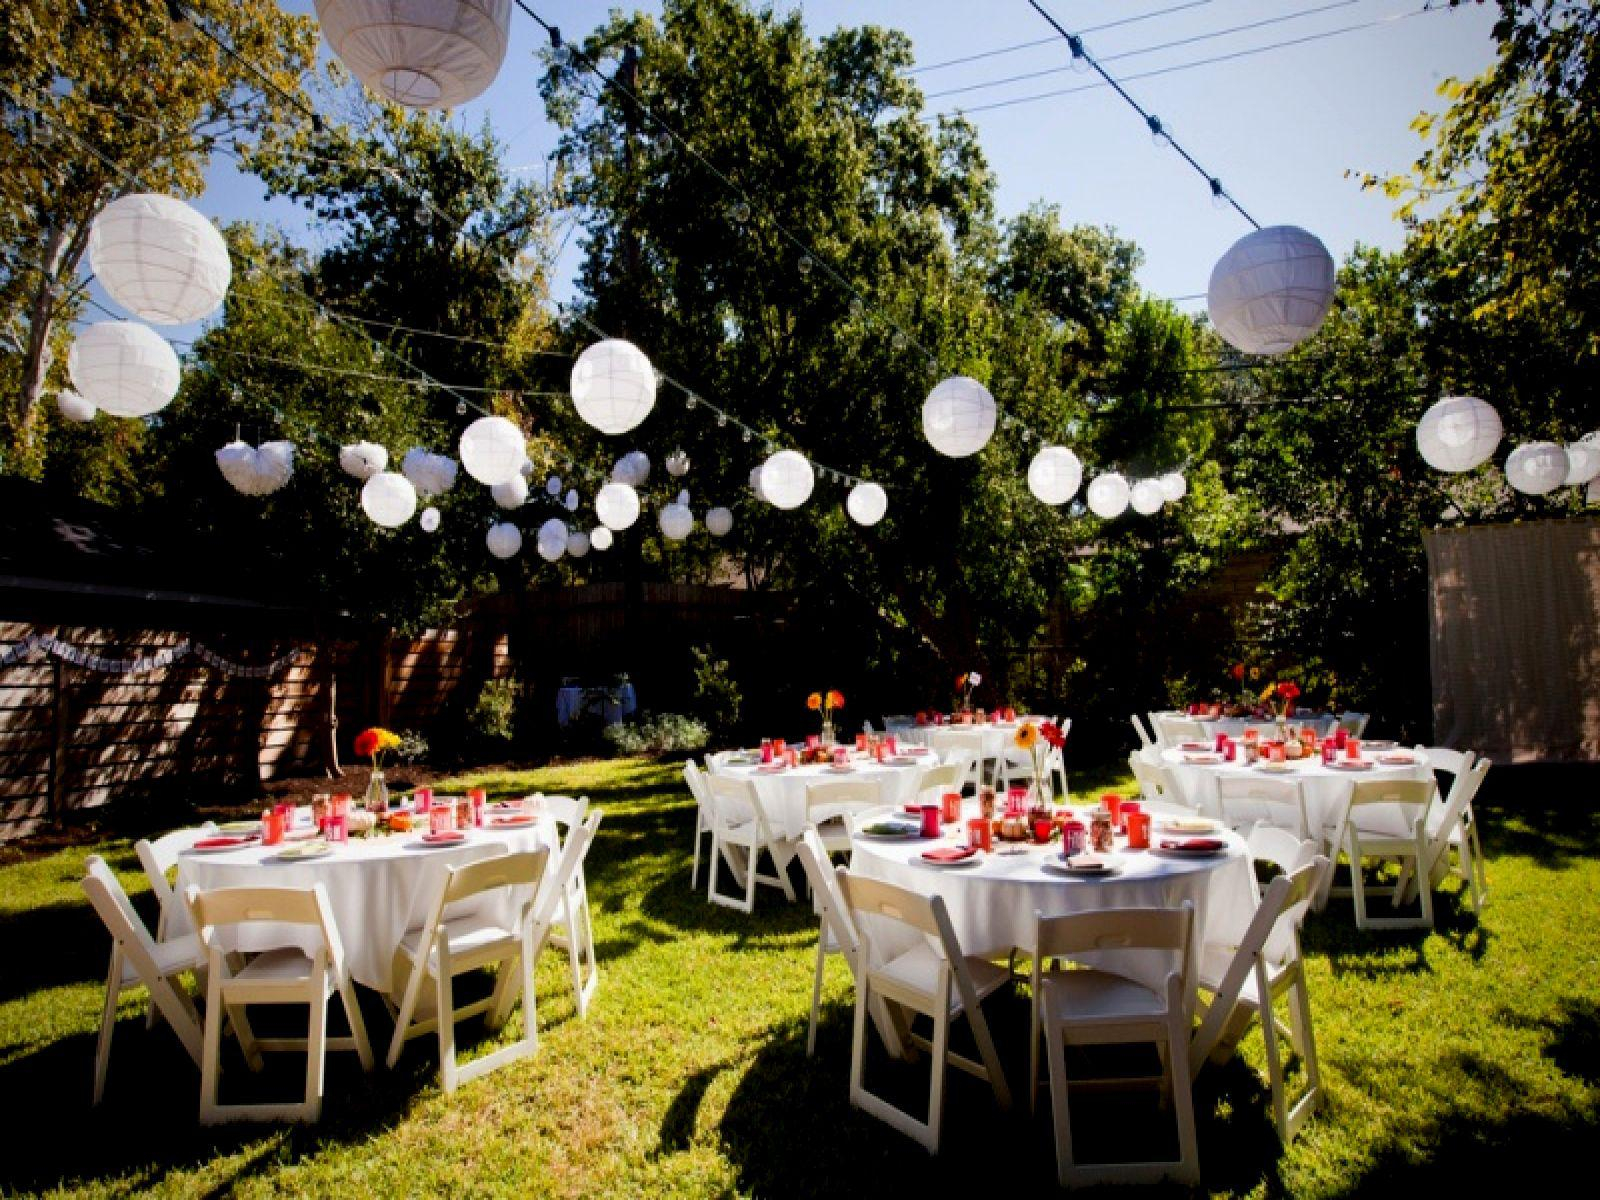 Outdoor Backyard Wedding Ideas Jowilfried Tsonga Decor 12 intended for Outdoor Backyard Wedding Ideas